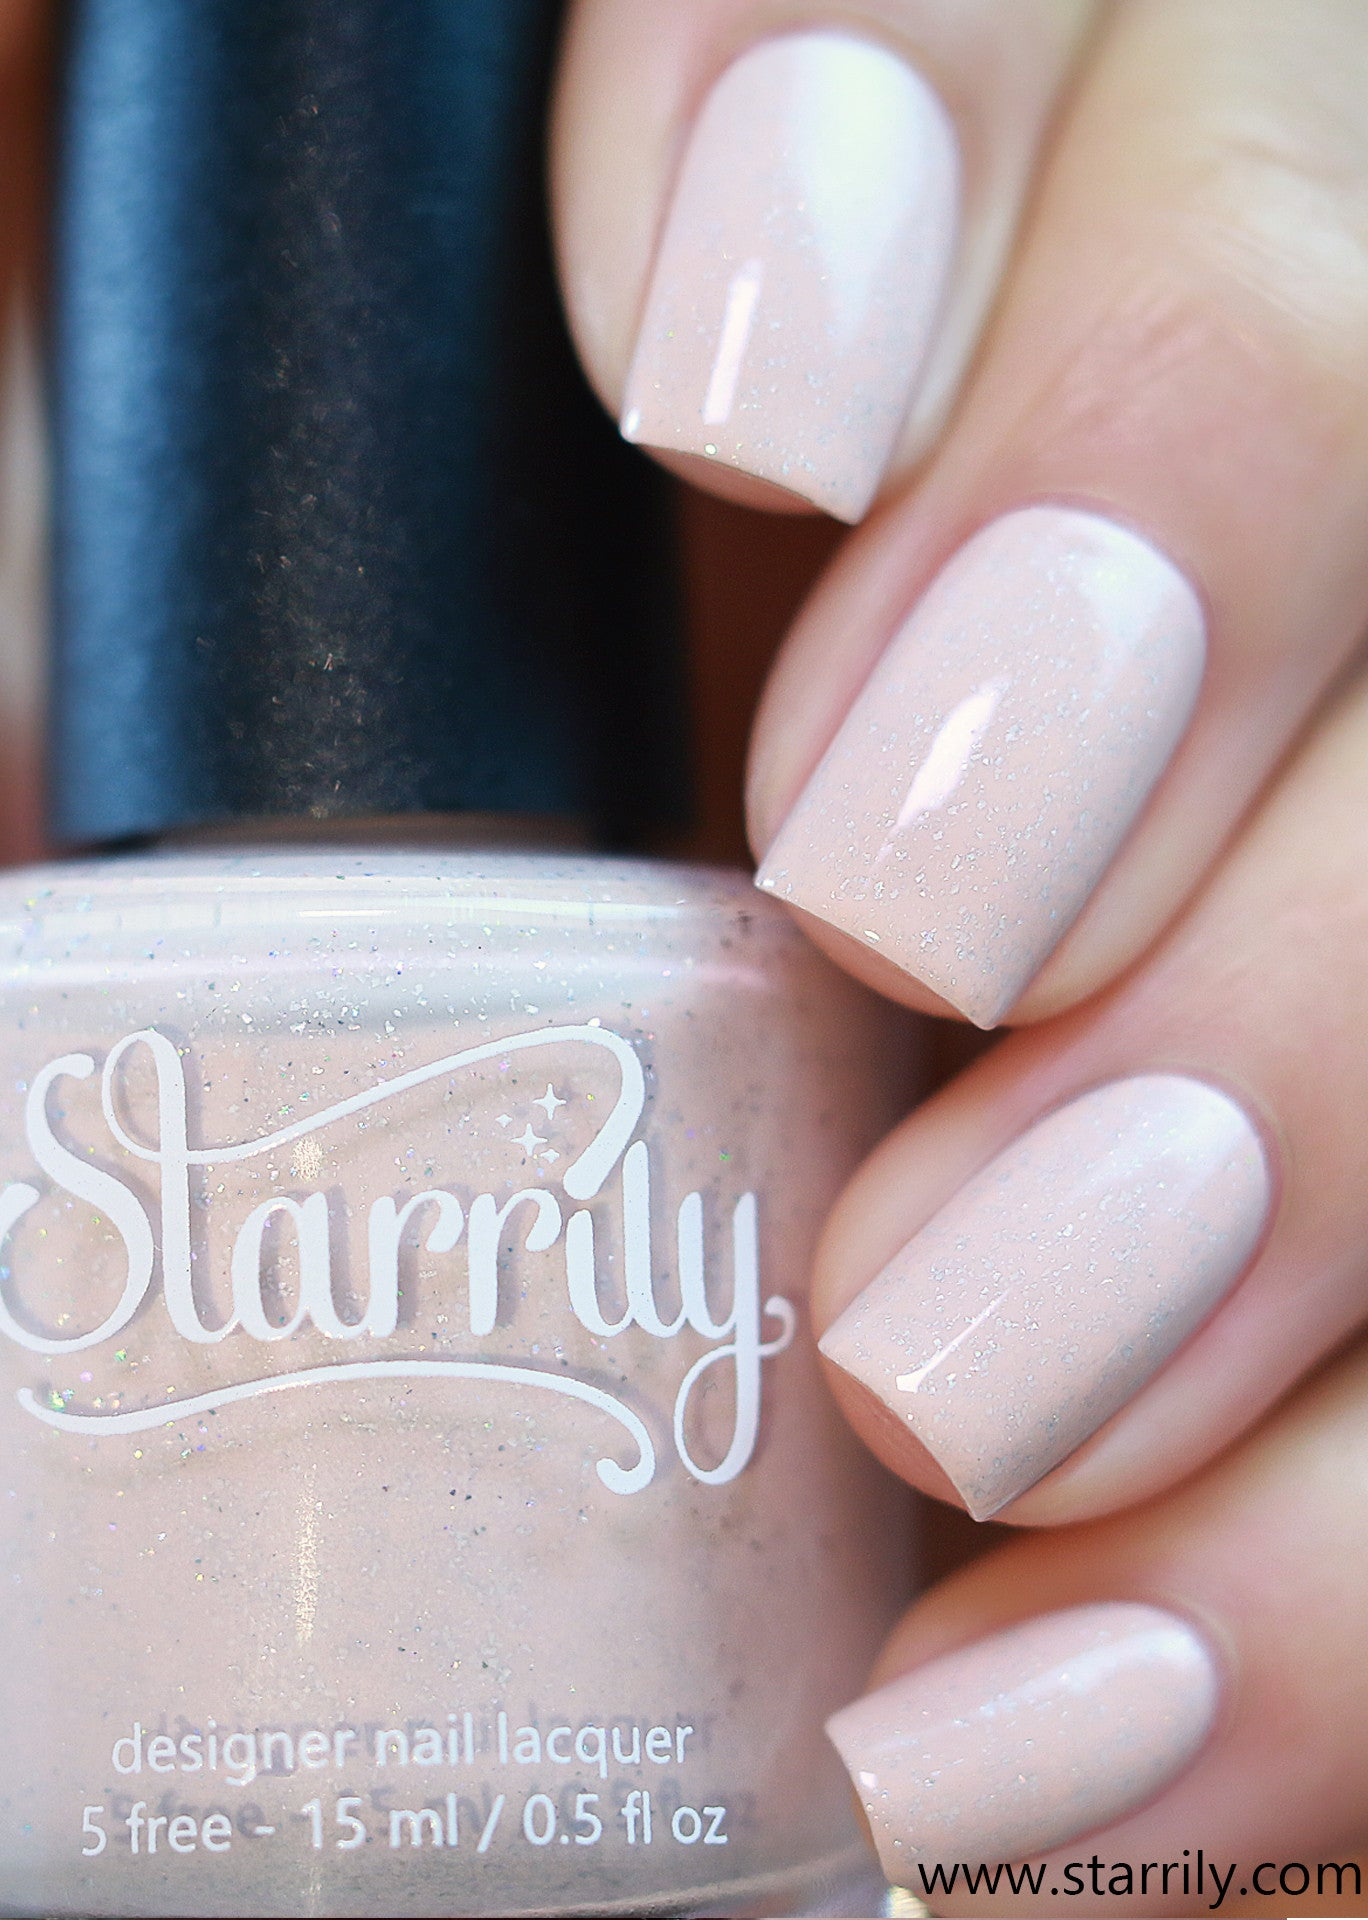 Ortley Beach is a stunning peach nude nail polish with holographic flakes